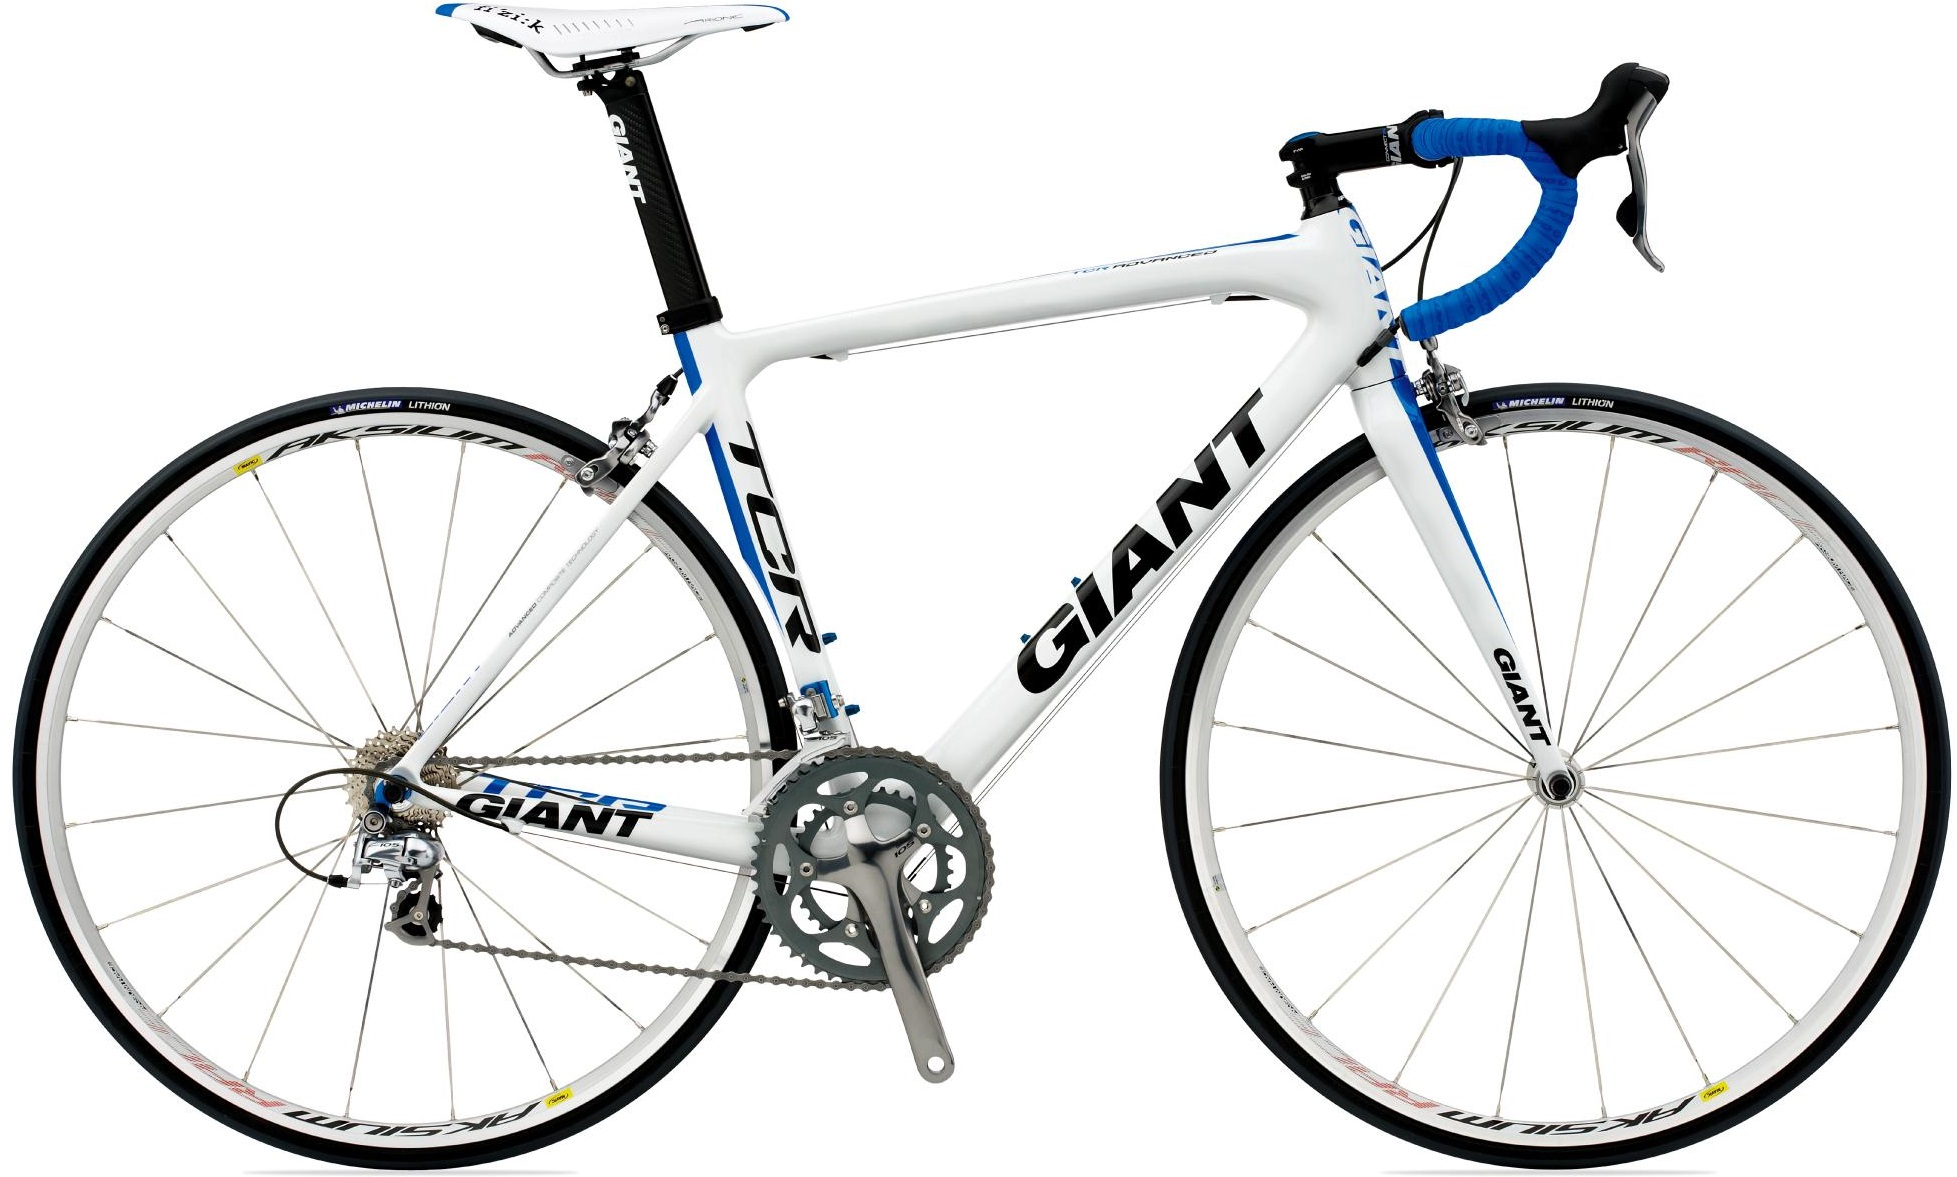 Giant vs Cannondale